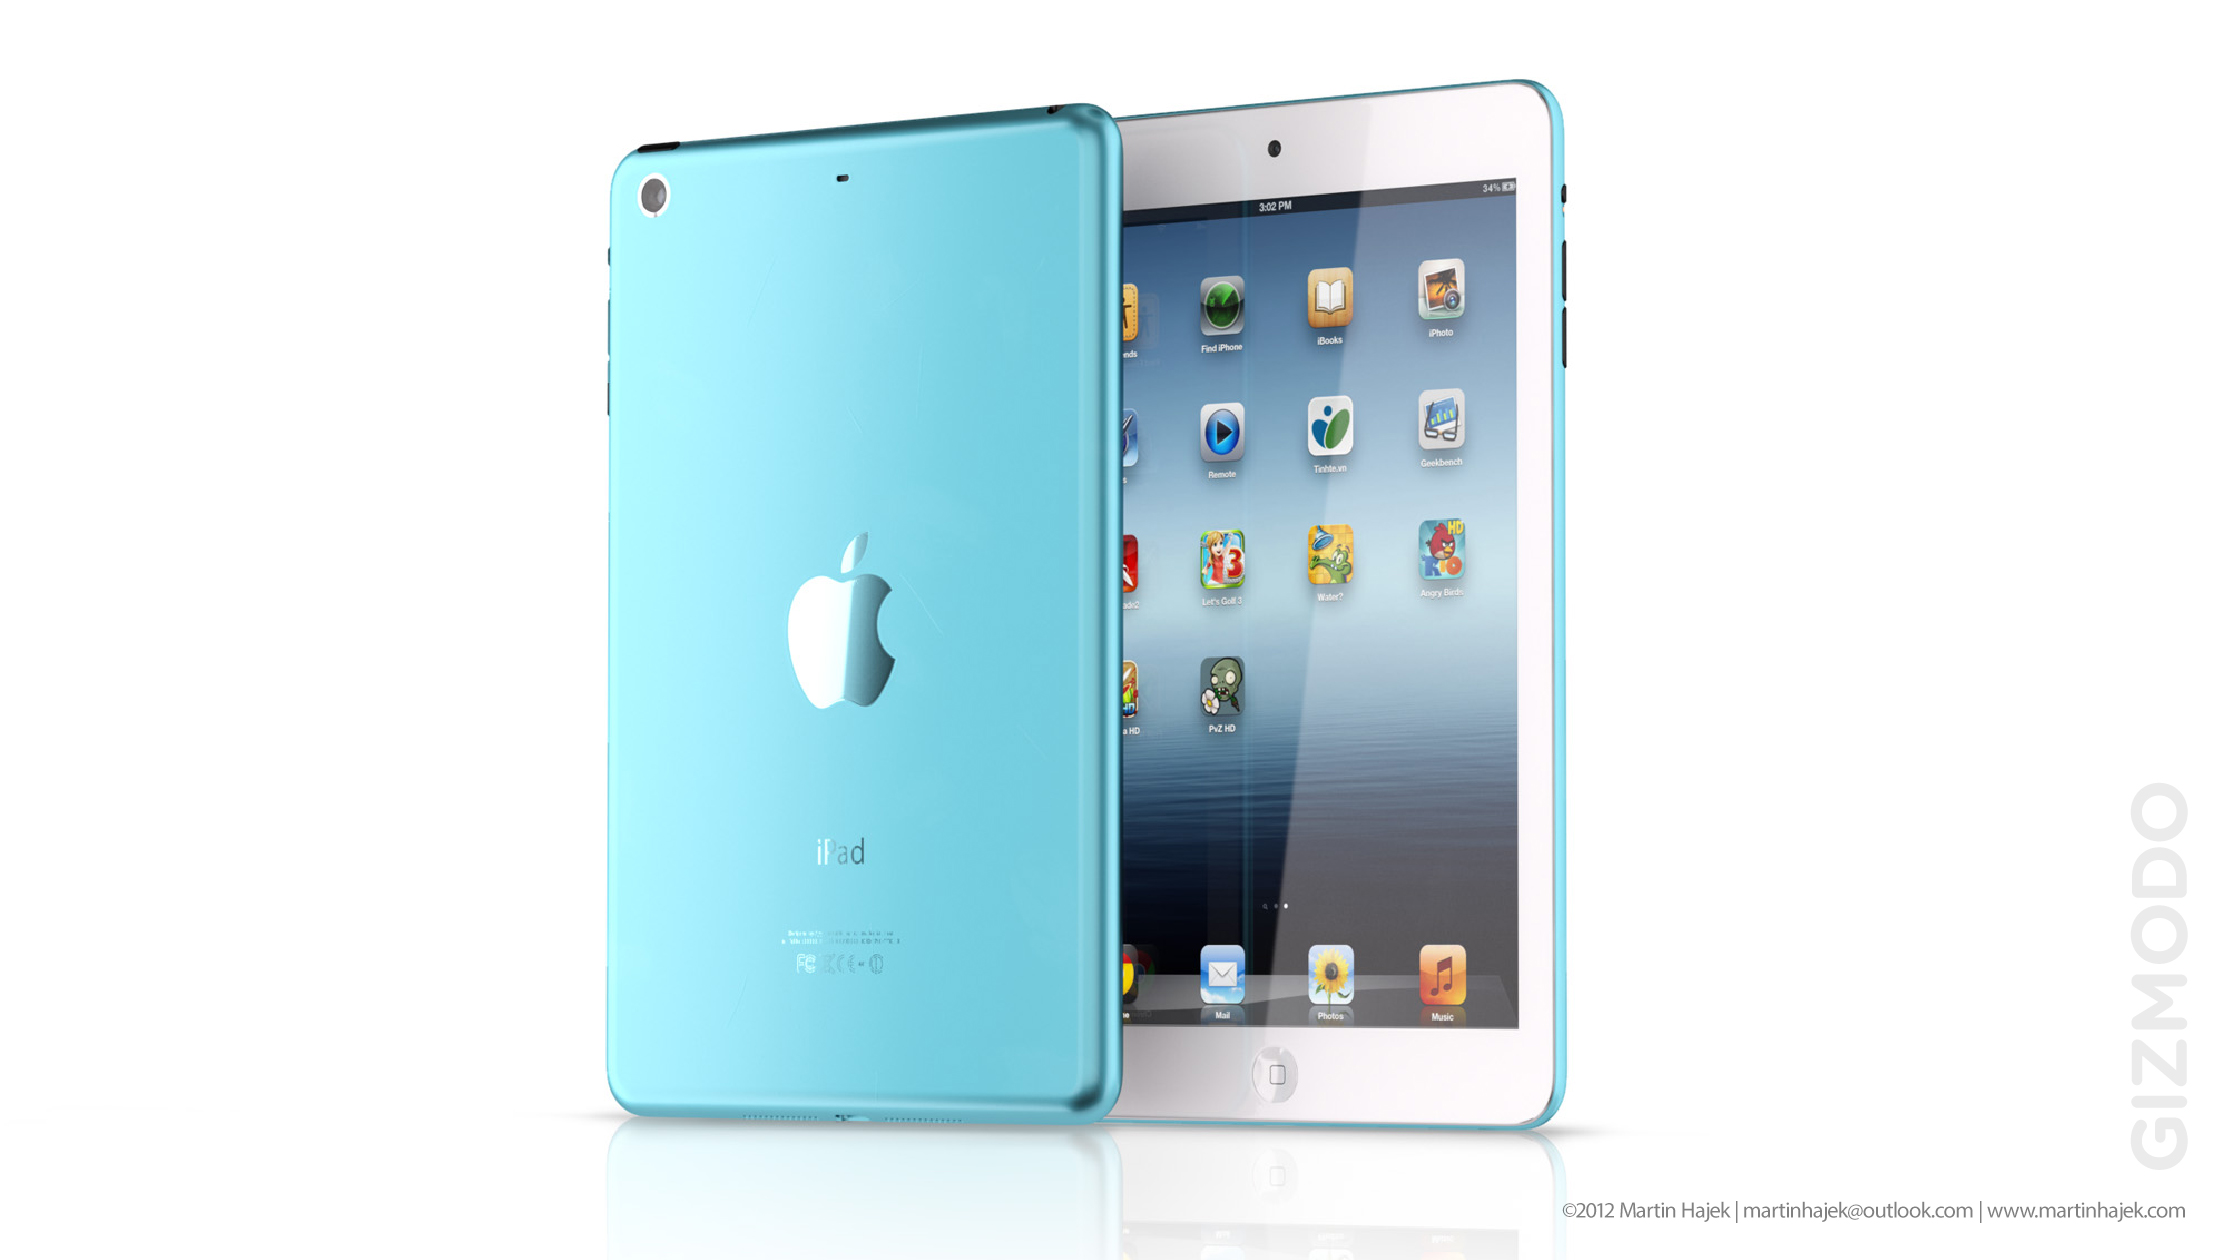 of the expected 7.85-inch iPad mini [2] for Gizmodo [3] . Take a look